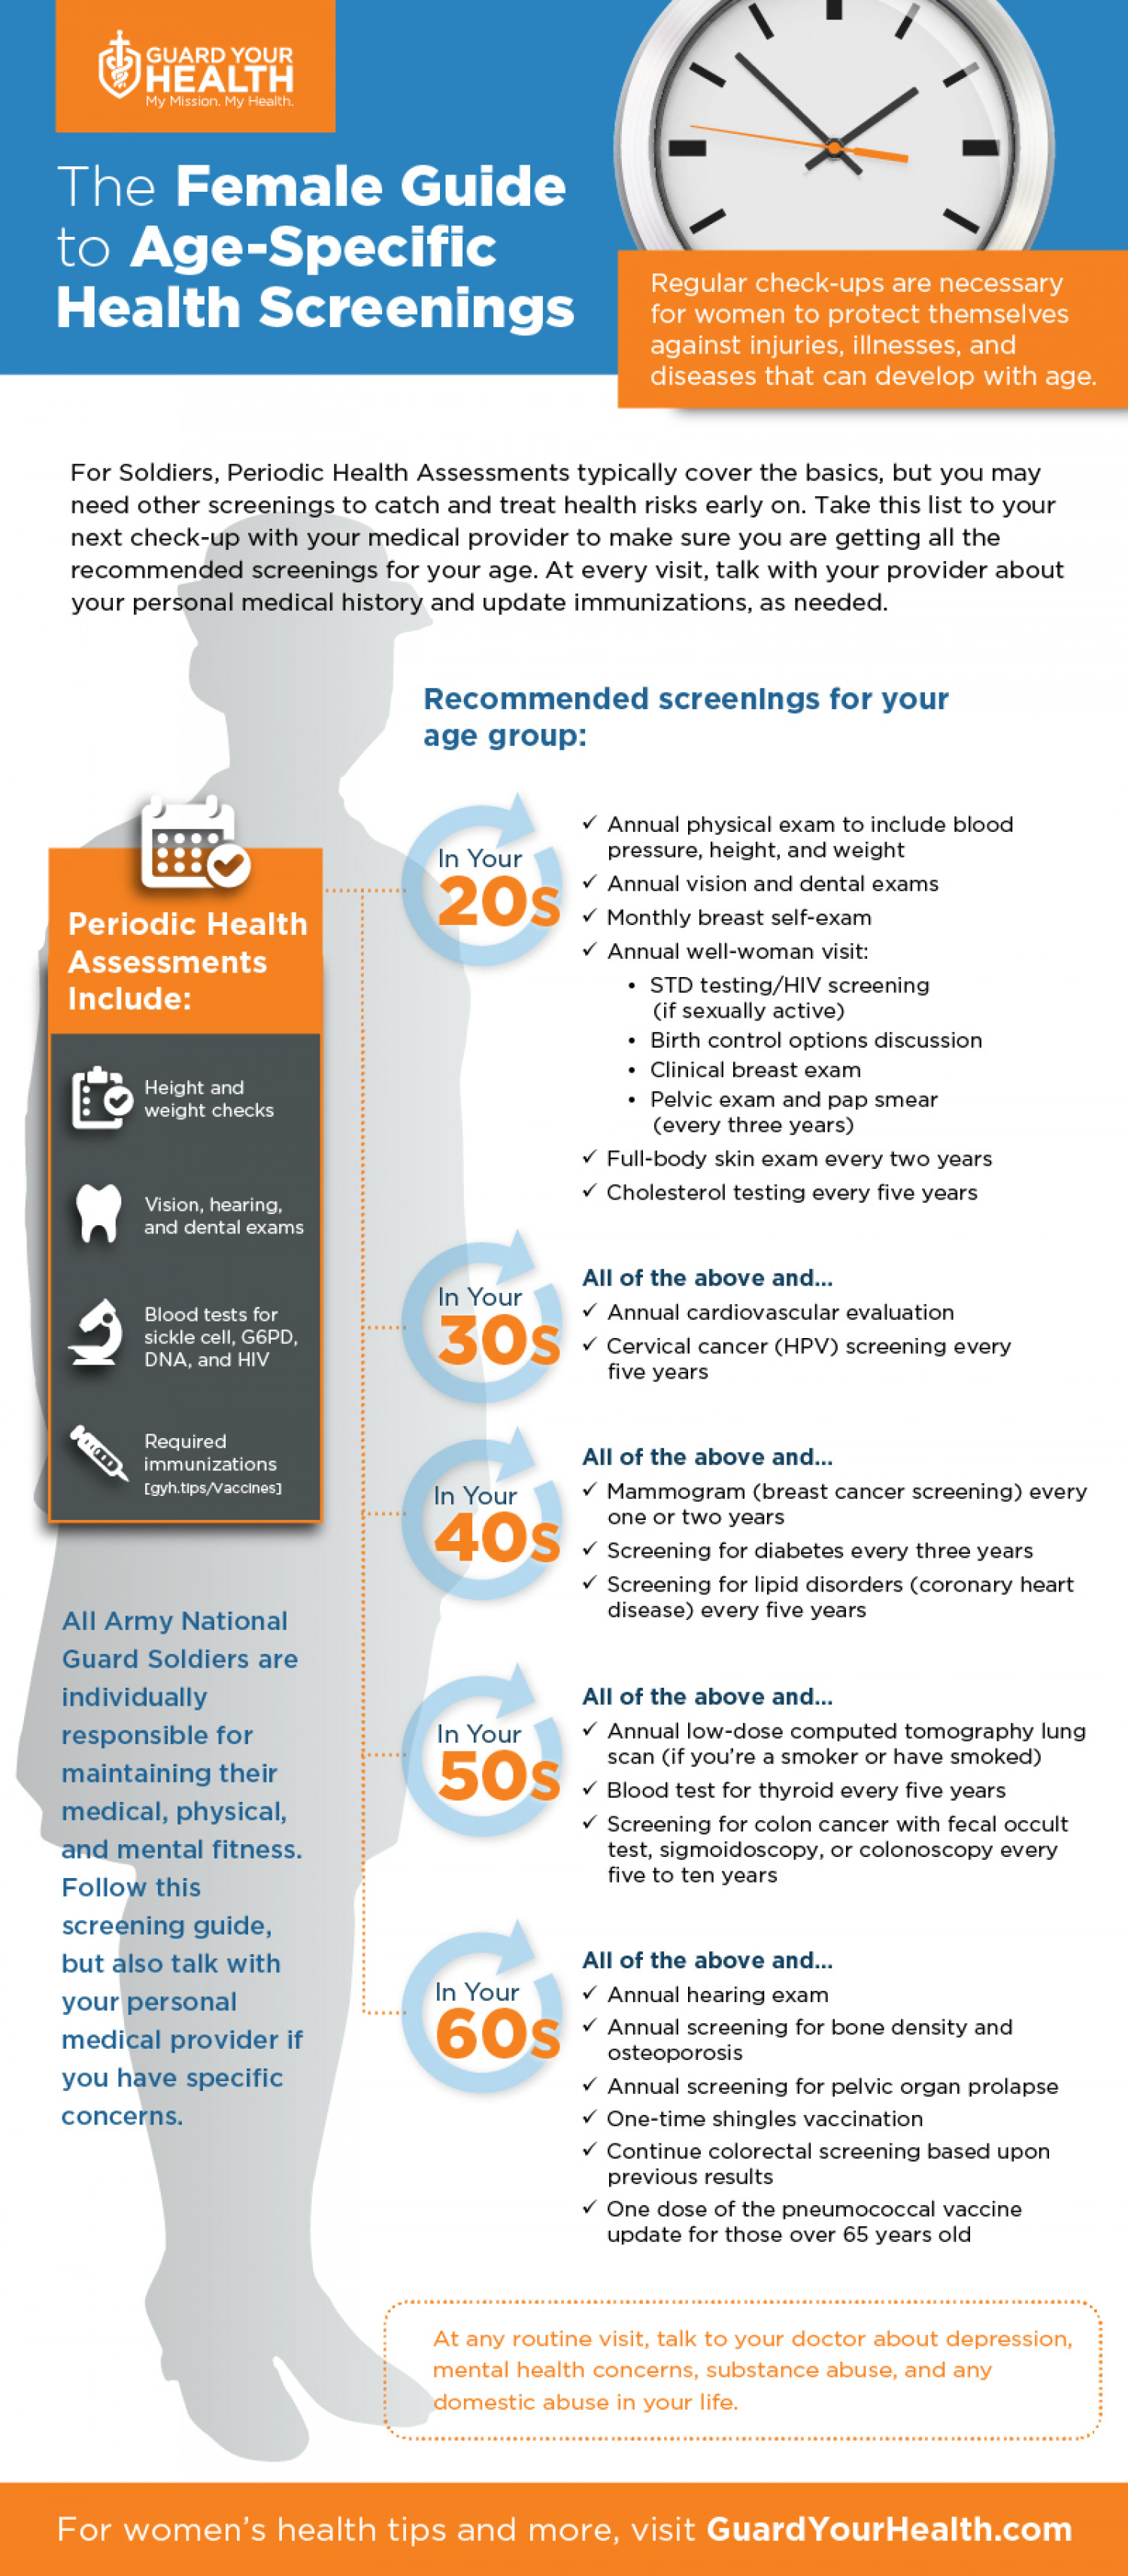 The Female Guide to Age-Specific Health Screenings Infographic